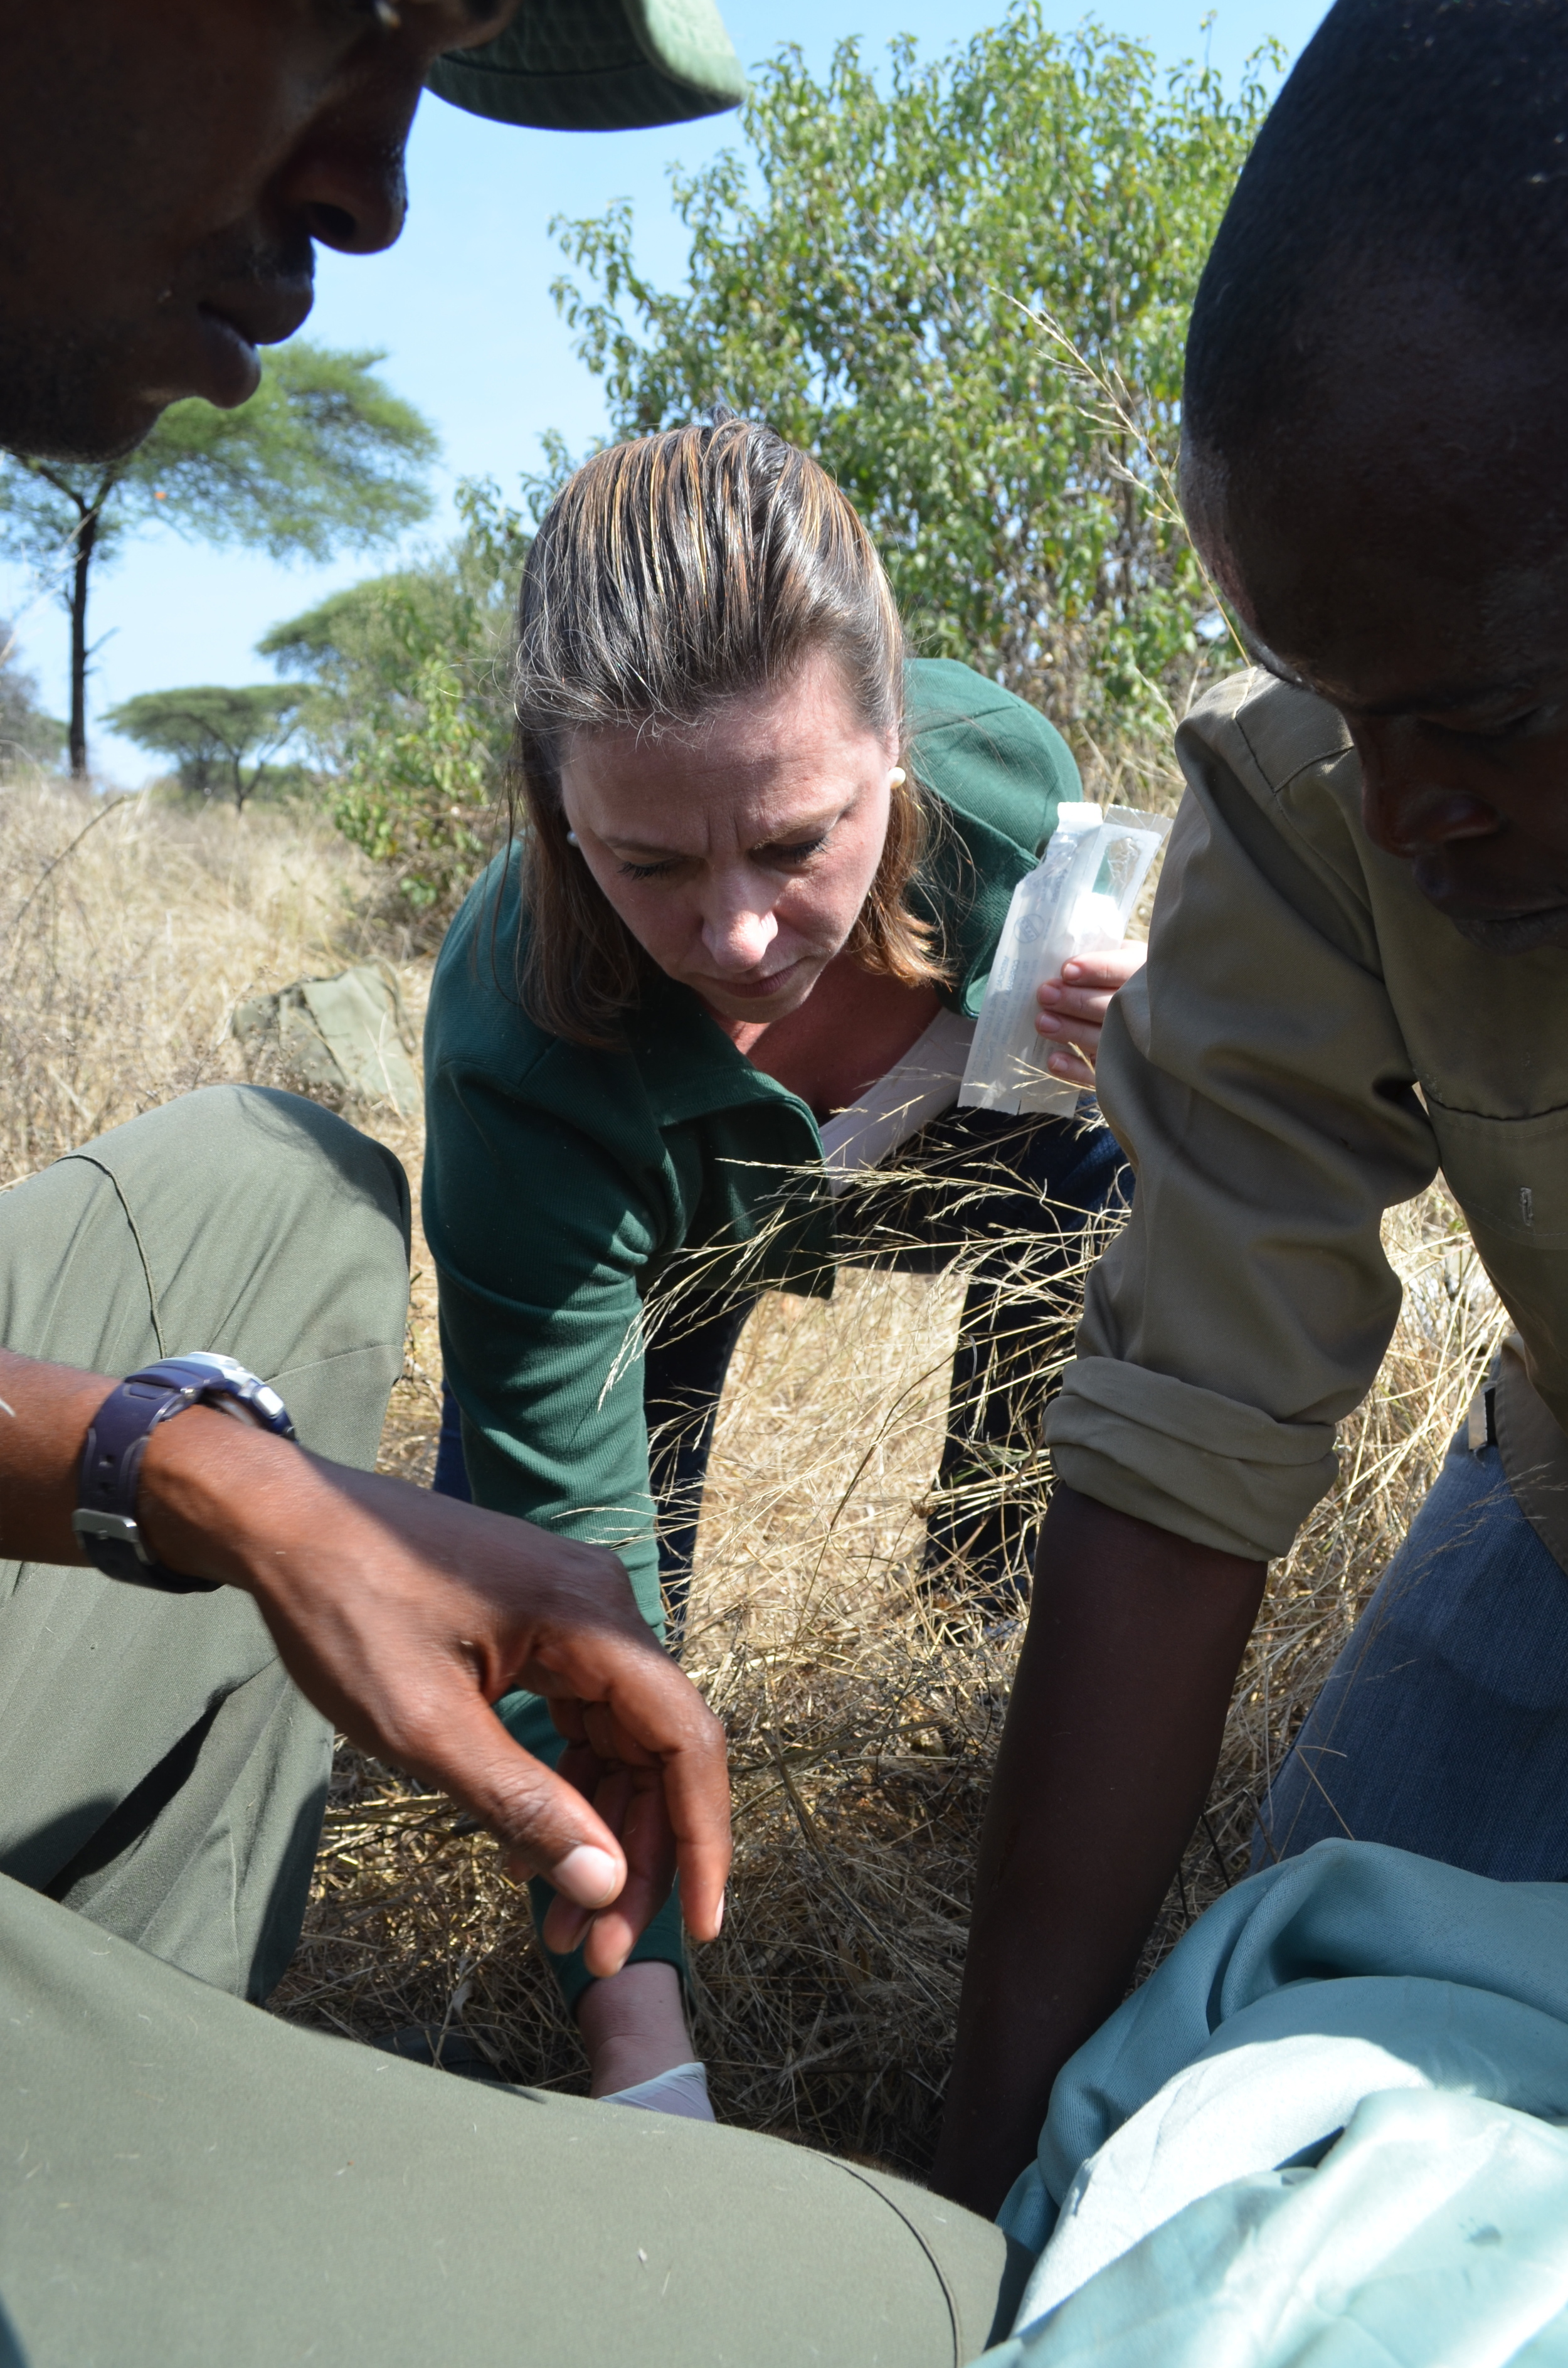 "HALI Project lead, Professor Jonna Mazet from UC Davis, collects a nasal swab sample from the giraffe while park rangers monitor the respiration rate.                  Normal.dotm     0     0     1     21     123     University of California, Davis     1     1     151     12.0                          0     false             18 pt     18 pt     0     0         false     false     false                                                     /* Style Definitions */ table.MsoNormalTable 	{mso-style-name:""Table Normal""; 	mso-tstyle-rowband-size:0; 	mso-tstyle-colband-size:0; 	mso-style-noshow:yes; 	mso-style-parent:""""; 	mso-padding-alt:0in 5.4pt 0in 5.4pt; 	mso-para-margin:0in; 	mso-para-margin-bottom:.0001pt; 	mso-pagination:widow-orphan; 	font-size:12.0pt; 	font-family:""Times New Roman""; 	mso-ascii-font-family:Cambria; 	mso-ascii-theme-font:minor-latin; 	mso-fareast-font-family:""Times New Roman""; 	mso-fareast-theme-font:minor-fareast; 	mso-hansi-font-family:Cambria; 	mso-hansi-theme-font:minor-latin;}"